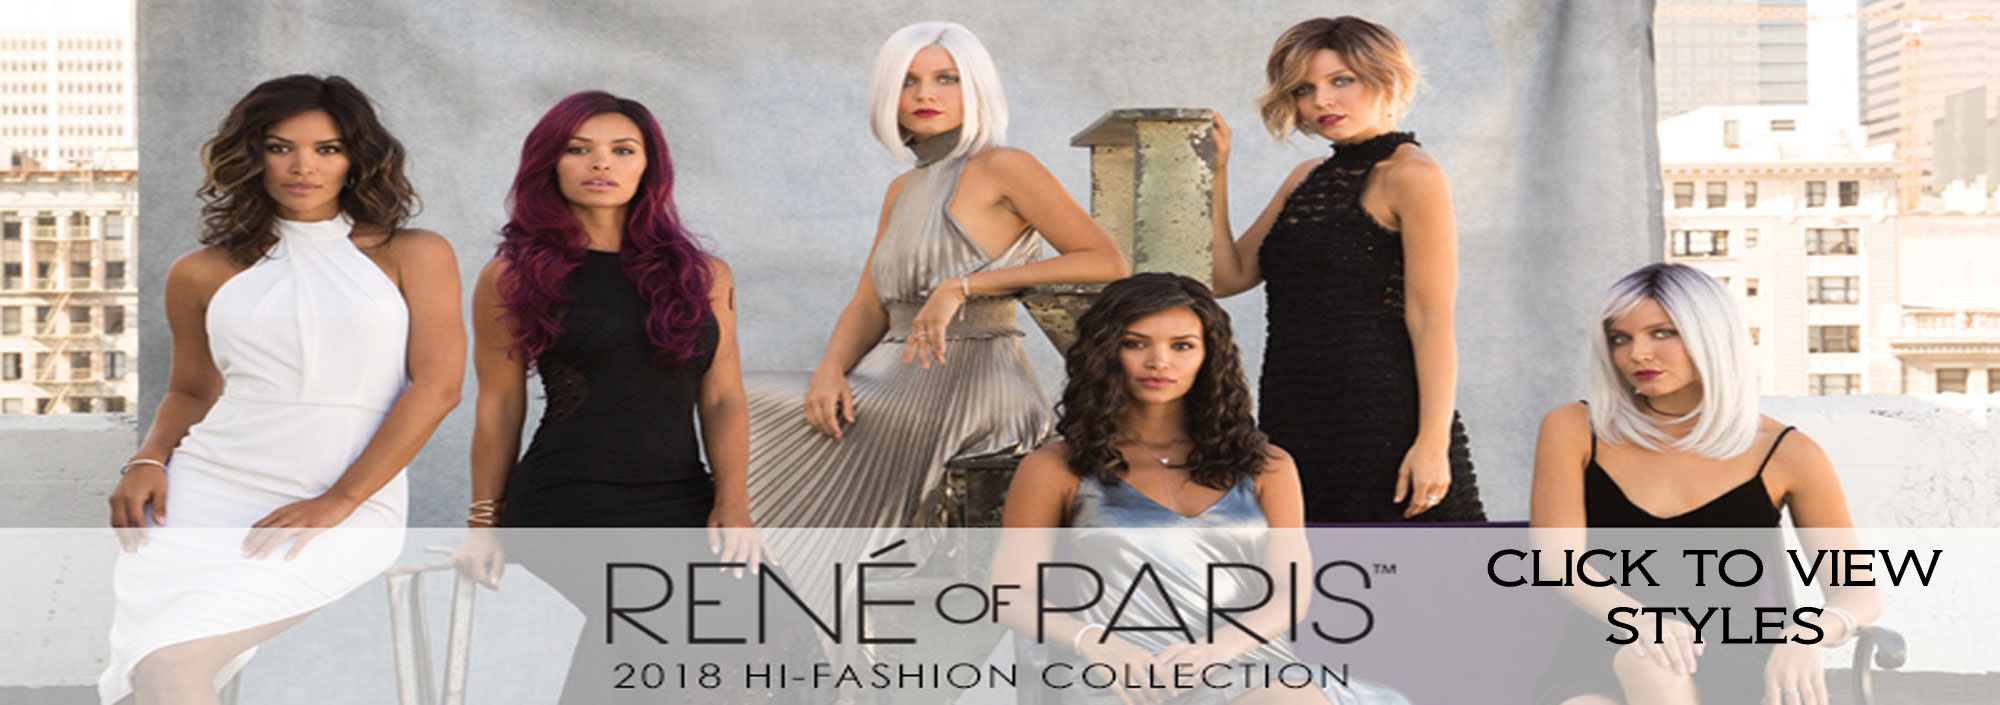 HI Fashion 2018 Collection